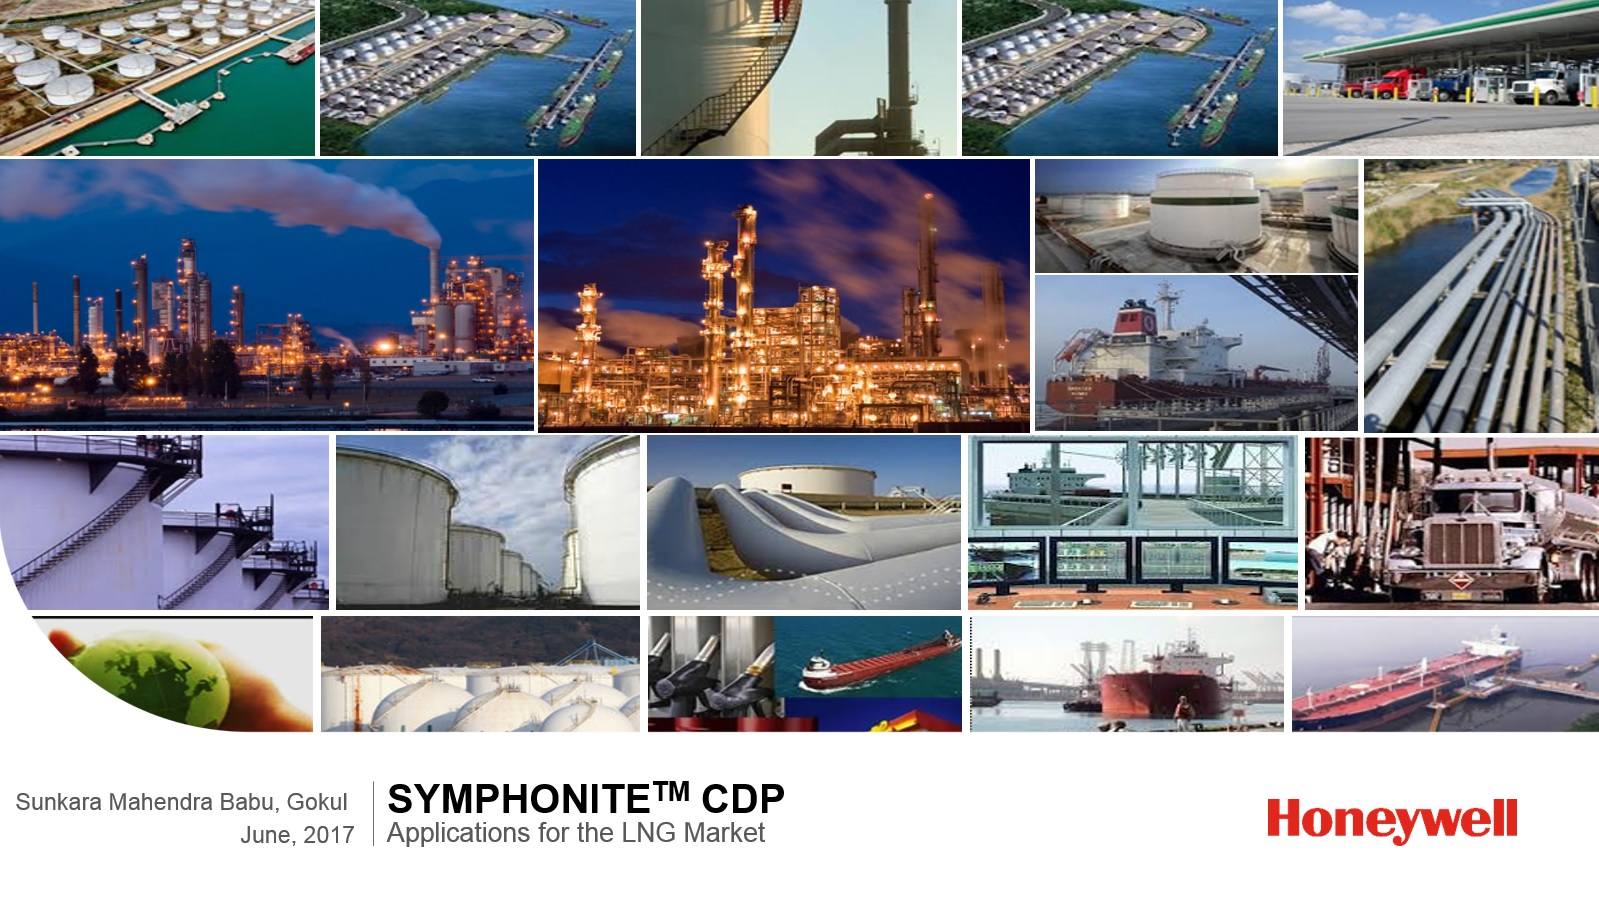 Symphonite™ CDP Serving the LNG Market